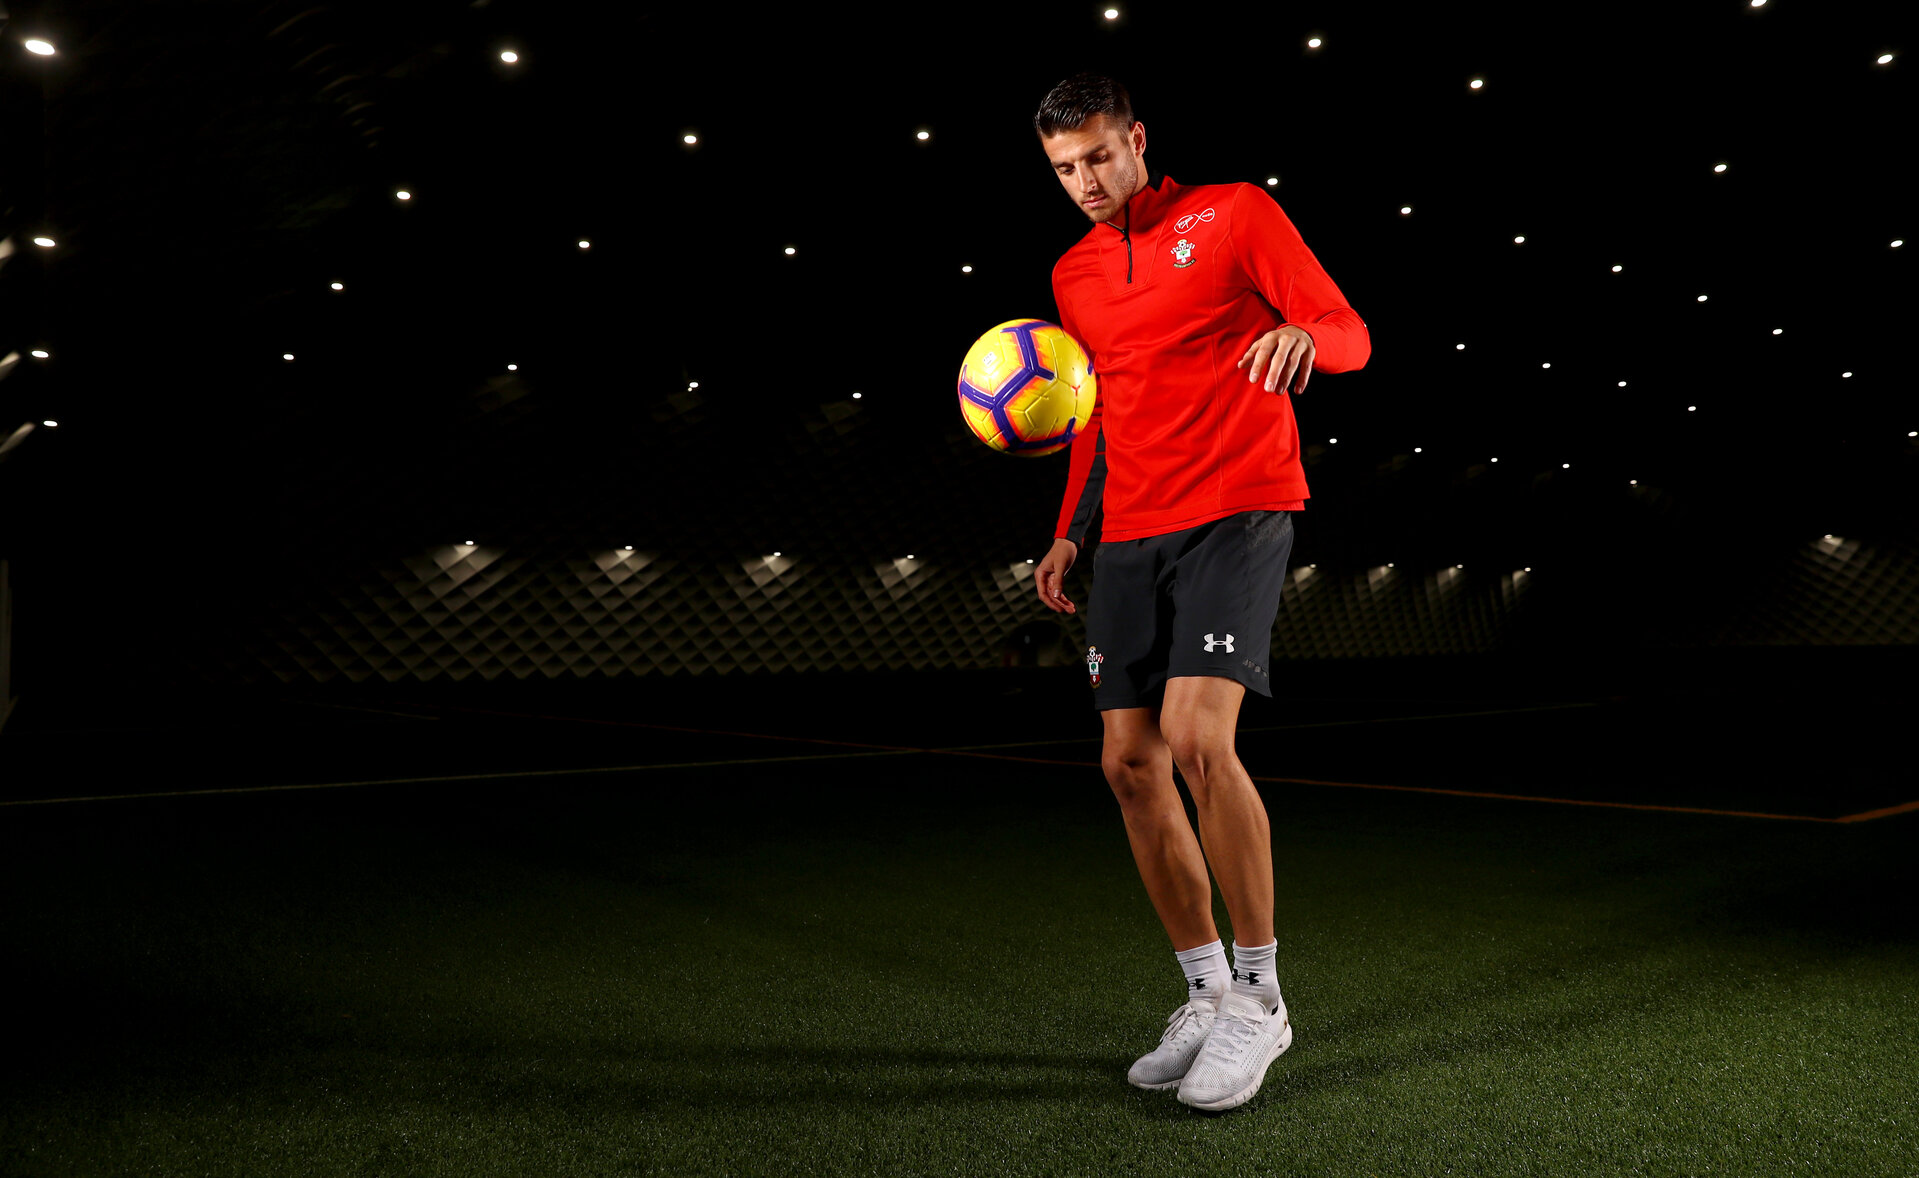 Southampton FC's Wesley Hoedt pictured at the Staplewood Campus, for the Saints match day magazine, 6th November 2018